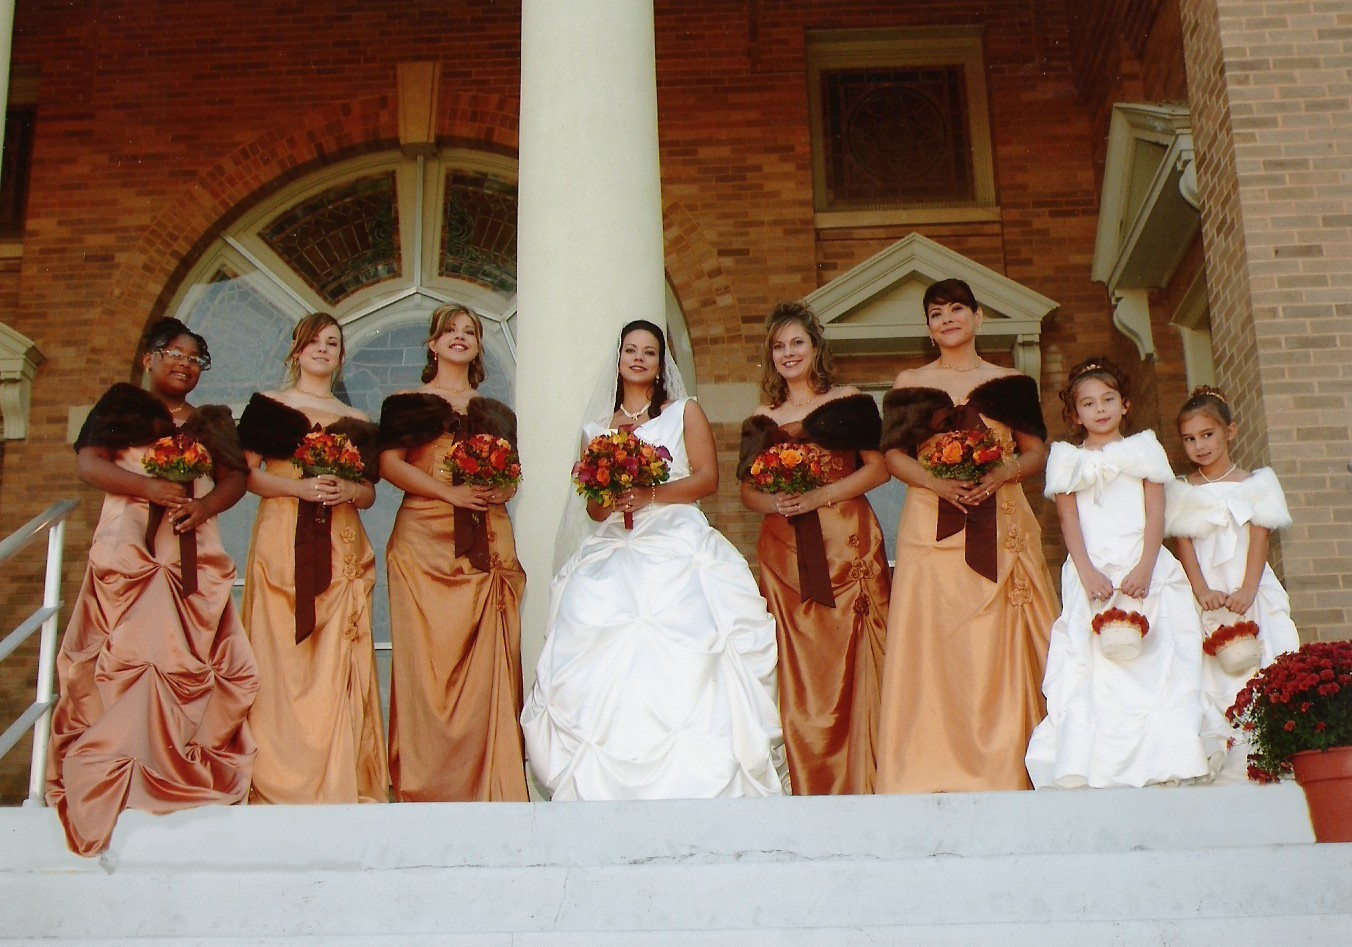 Flowers & Decor, Bridesmaids, Bridesmaids Dresses, Wedding Dresses, Fashion, yellow, orange, brown, gold, dress, Bridesmaid Bouquets, Flowers, Maximum capacity events, Flower Wedding Dresses